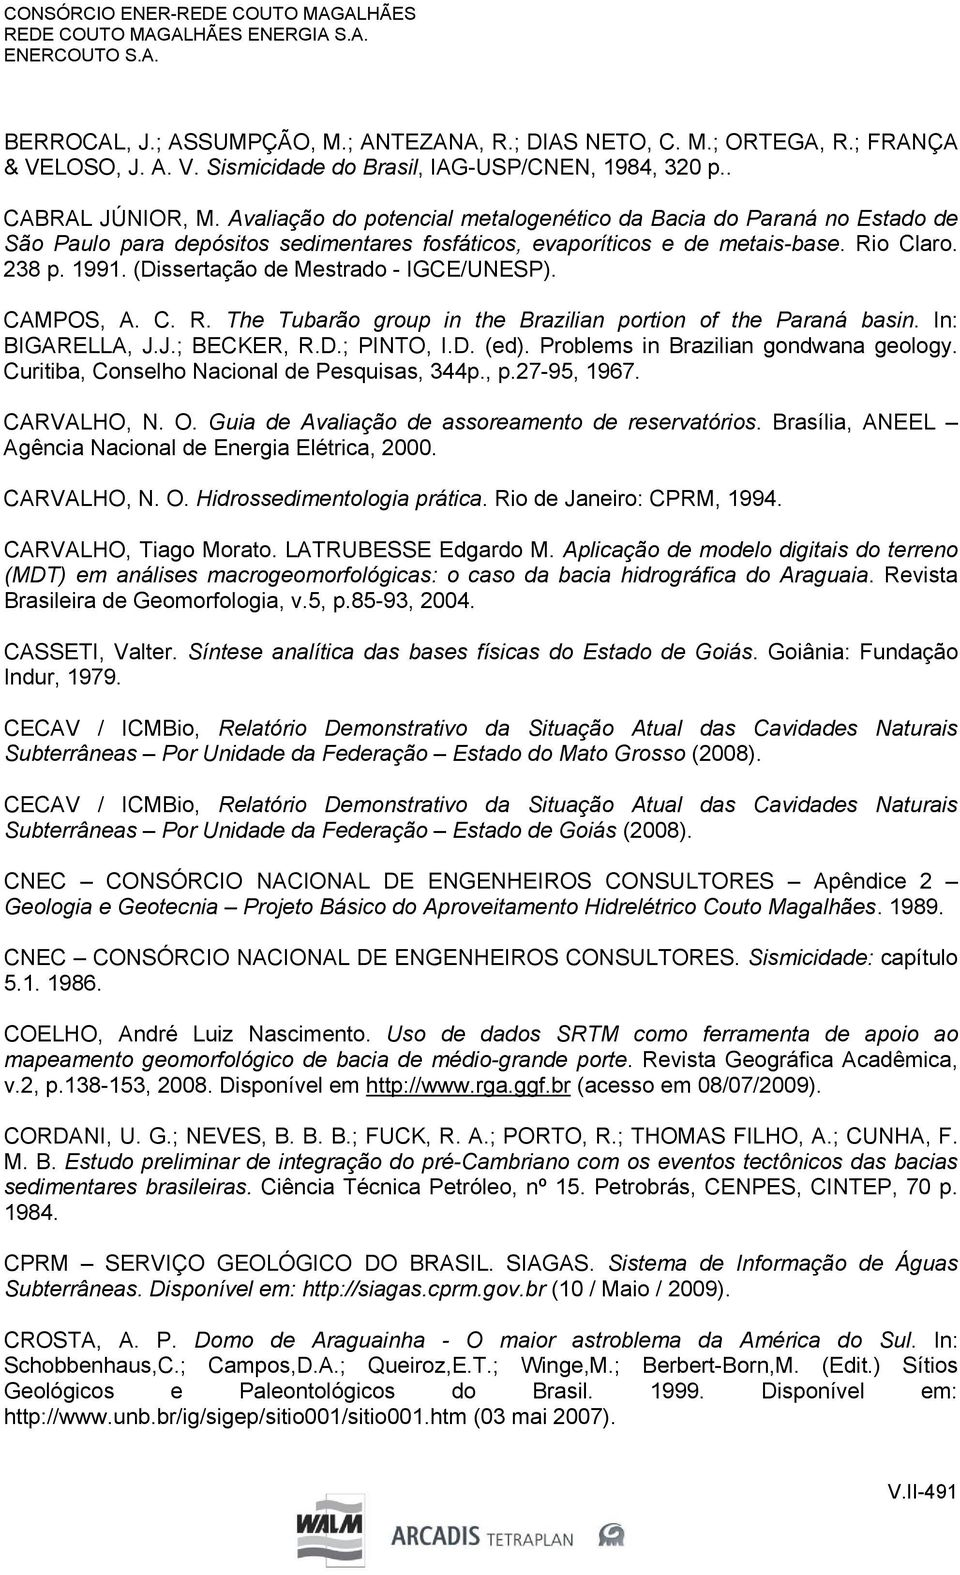 (Dissertação de Mestrado - IGCE/UNESP). CAMPOS, A. C. R. The Tubarão group in the Brazilian portion of the Paraná basin. In: BIGARELLA, J.J.; BECKER, R.D.; PINTO, I.D. (ed).